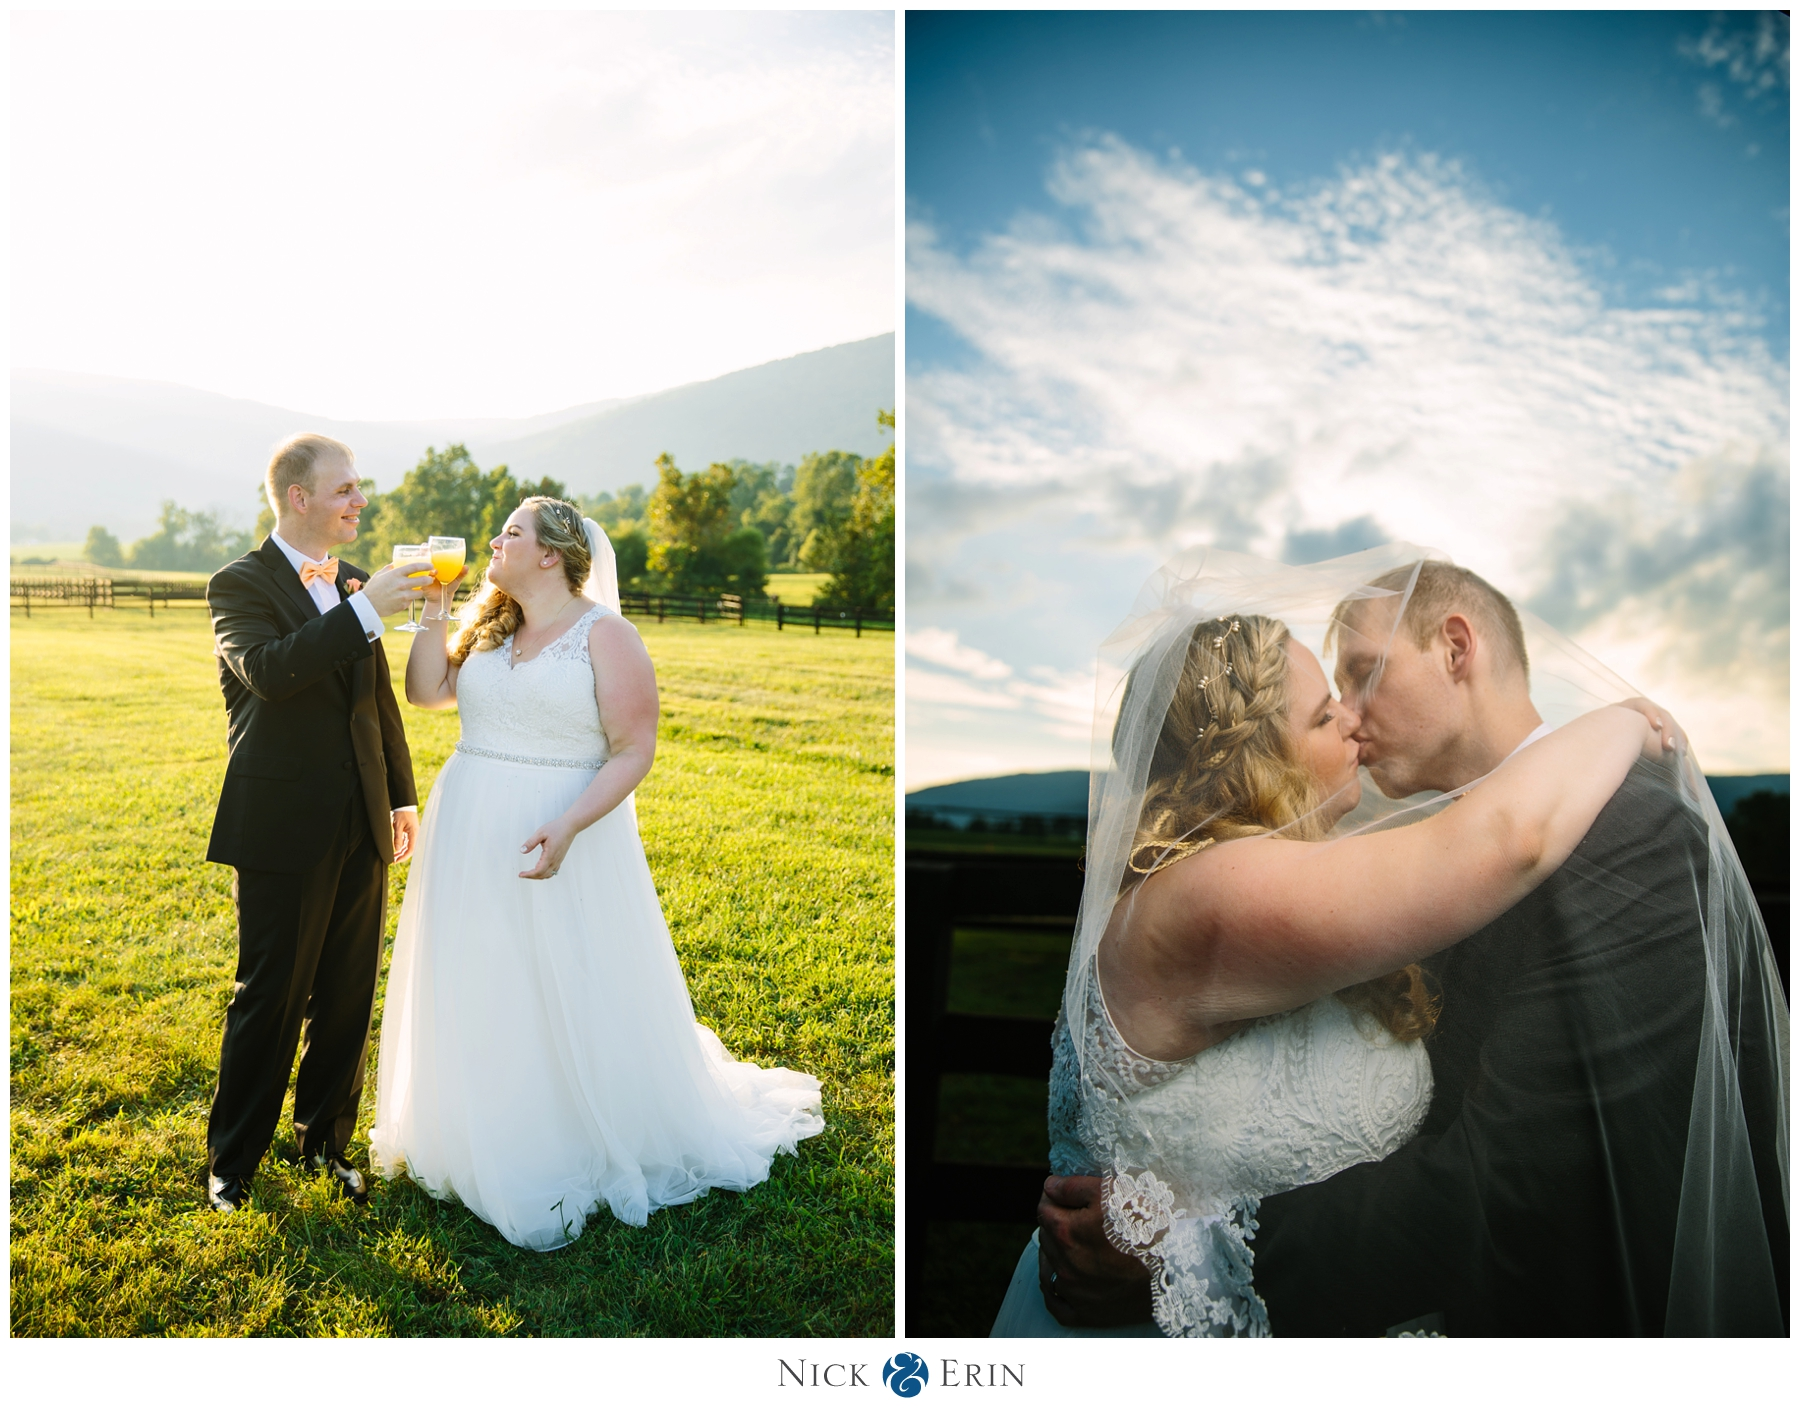 Donner_Photography_Charlottesville Virginia Wedding_Jennifer & Chris_0004